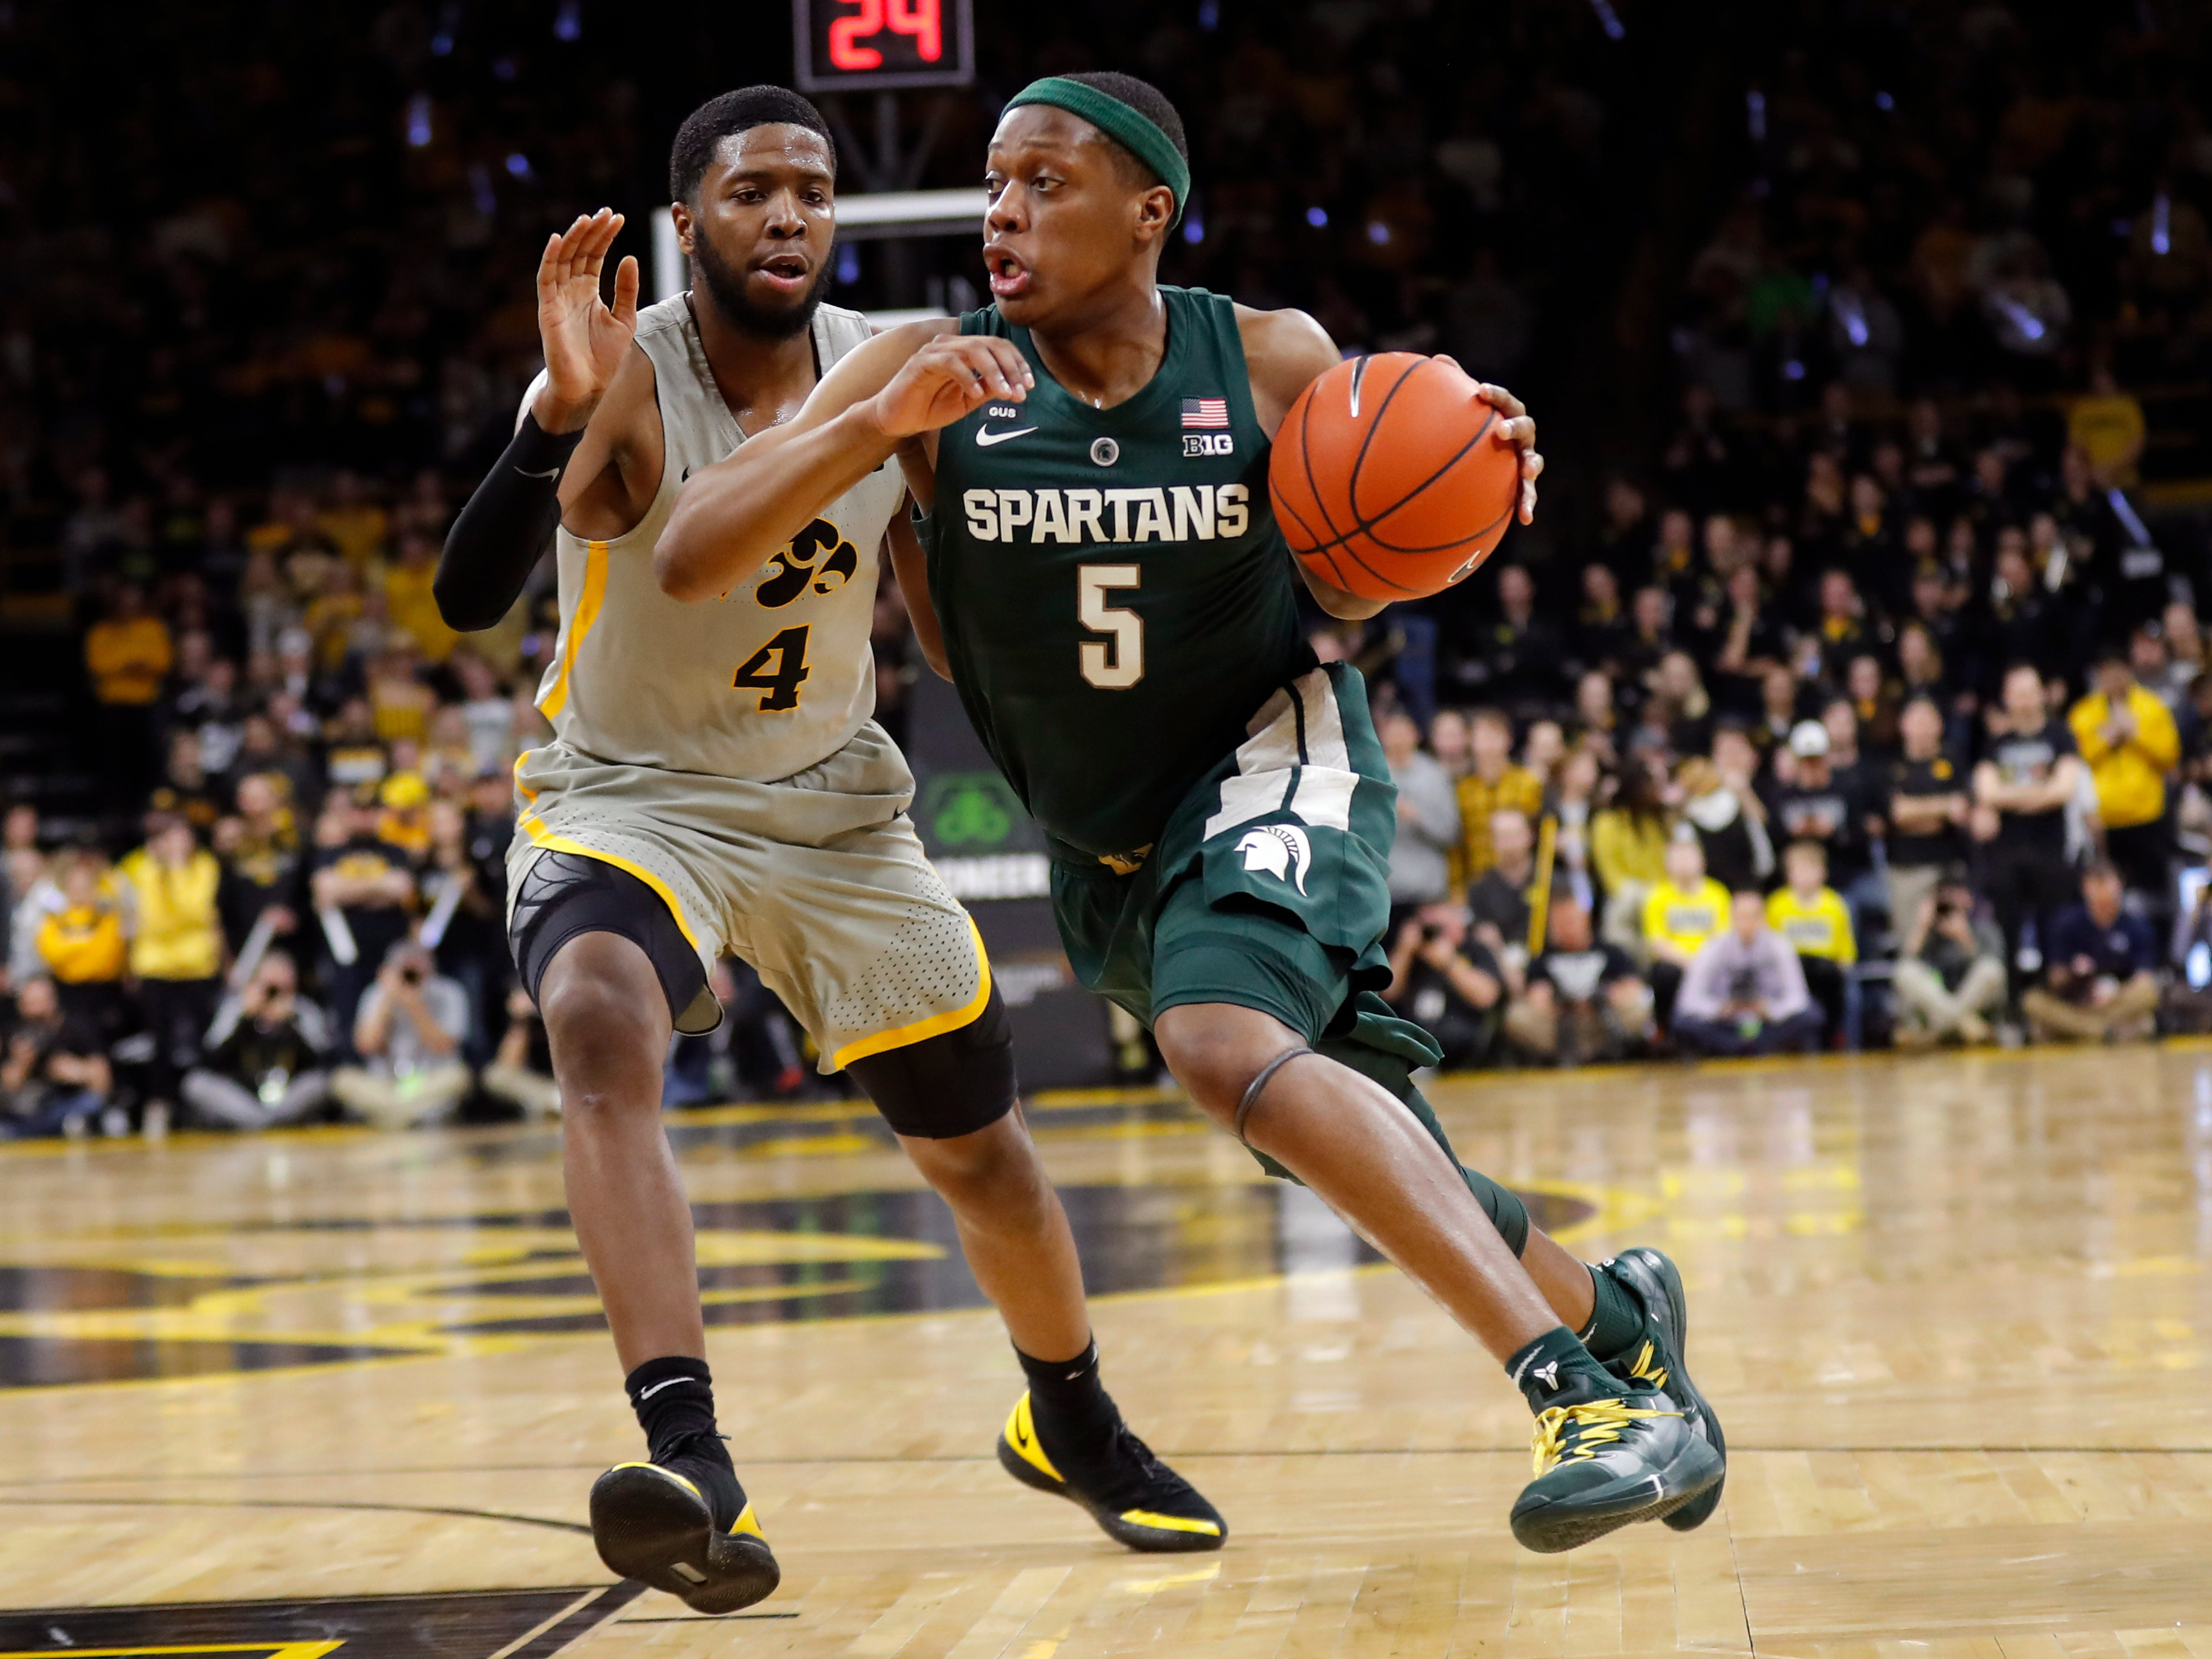 Michigan State guard Cassius Winston (5) drives past Iowa guard Isaiah Moss (4) during the first half of an NCAA college basketball game Thursday, Jan. 24, 2019, in Iowa City, Iowa.